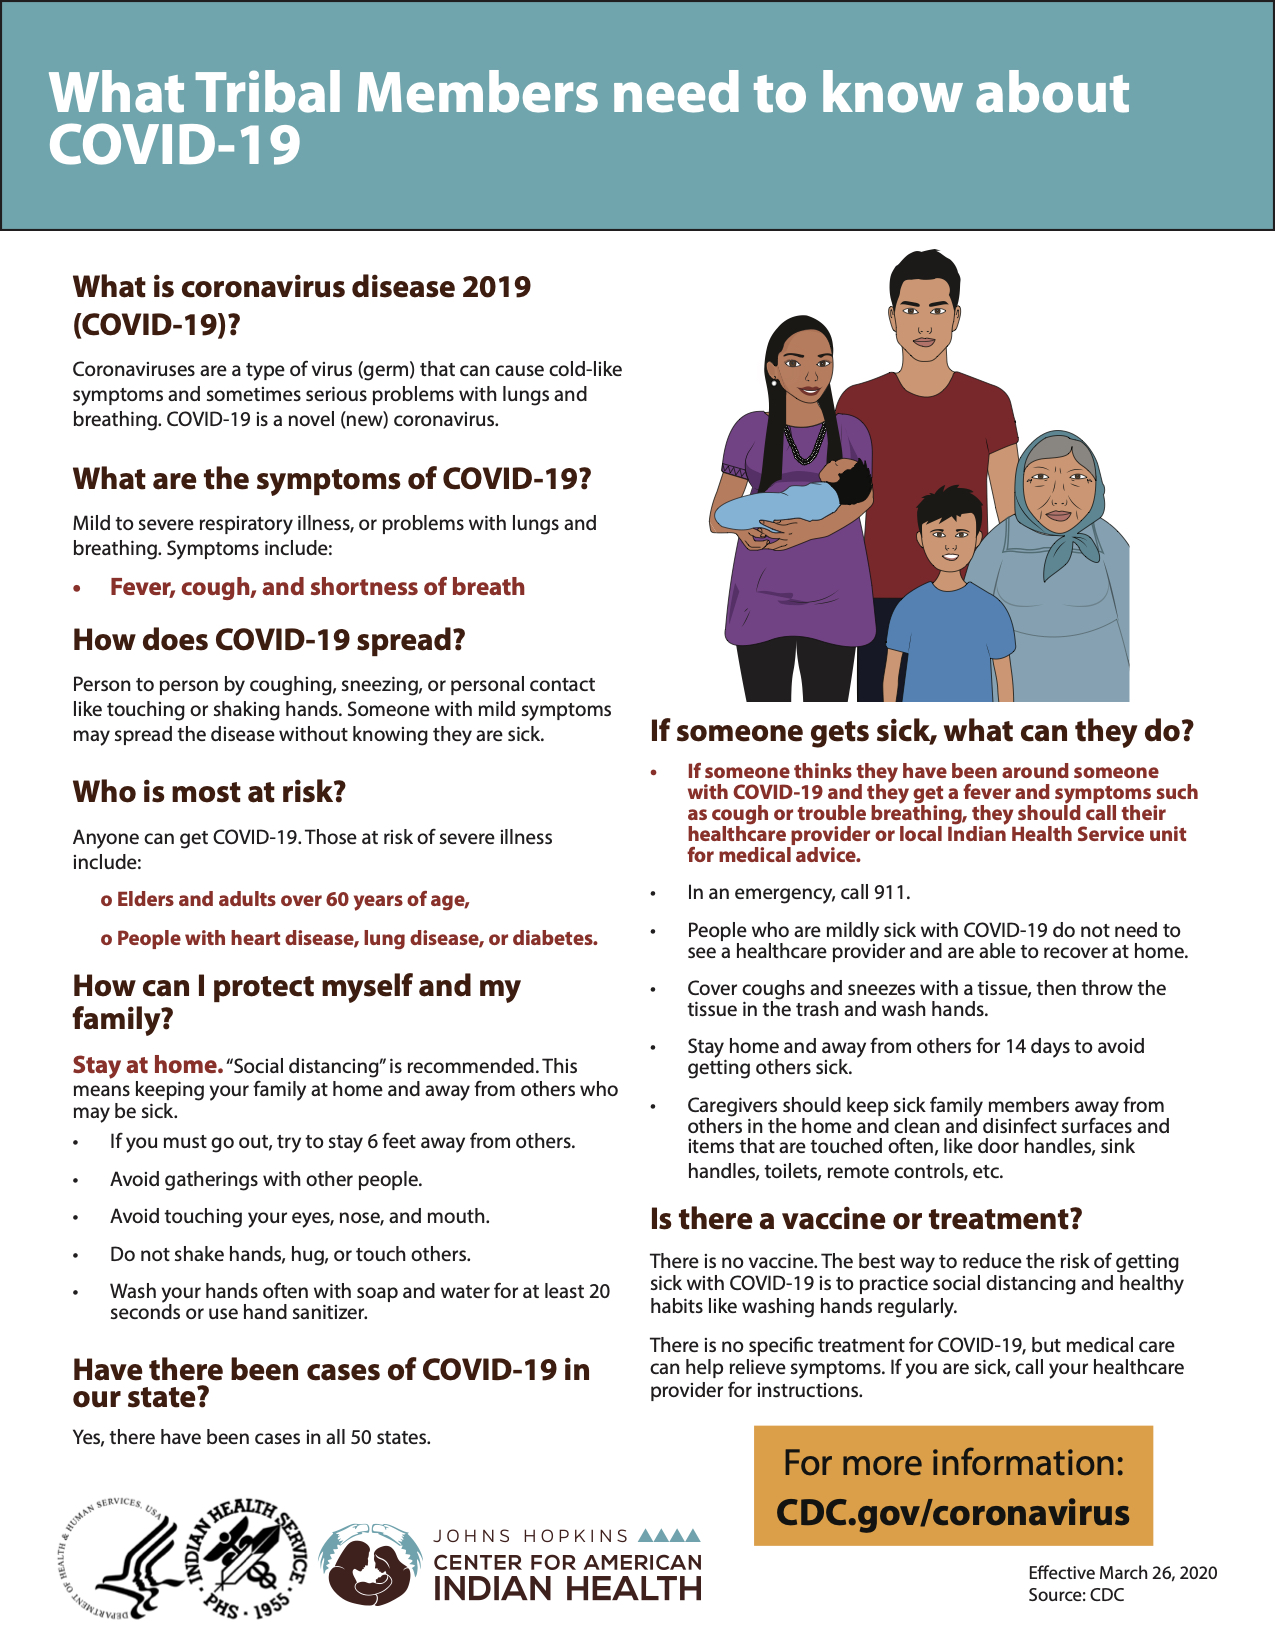 What Tribal Members need to know about COVID-19 flyer